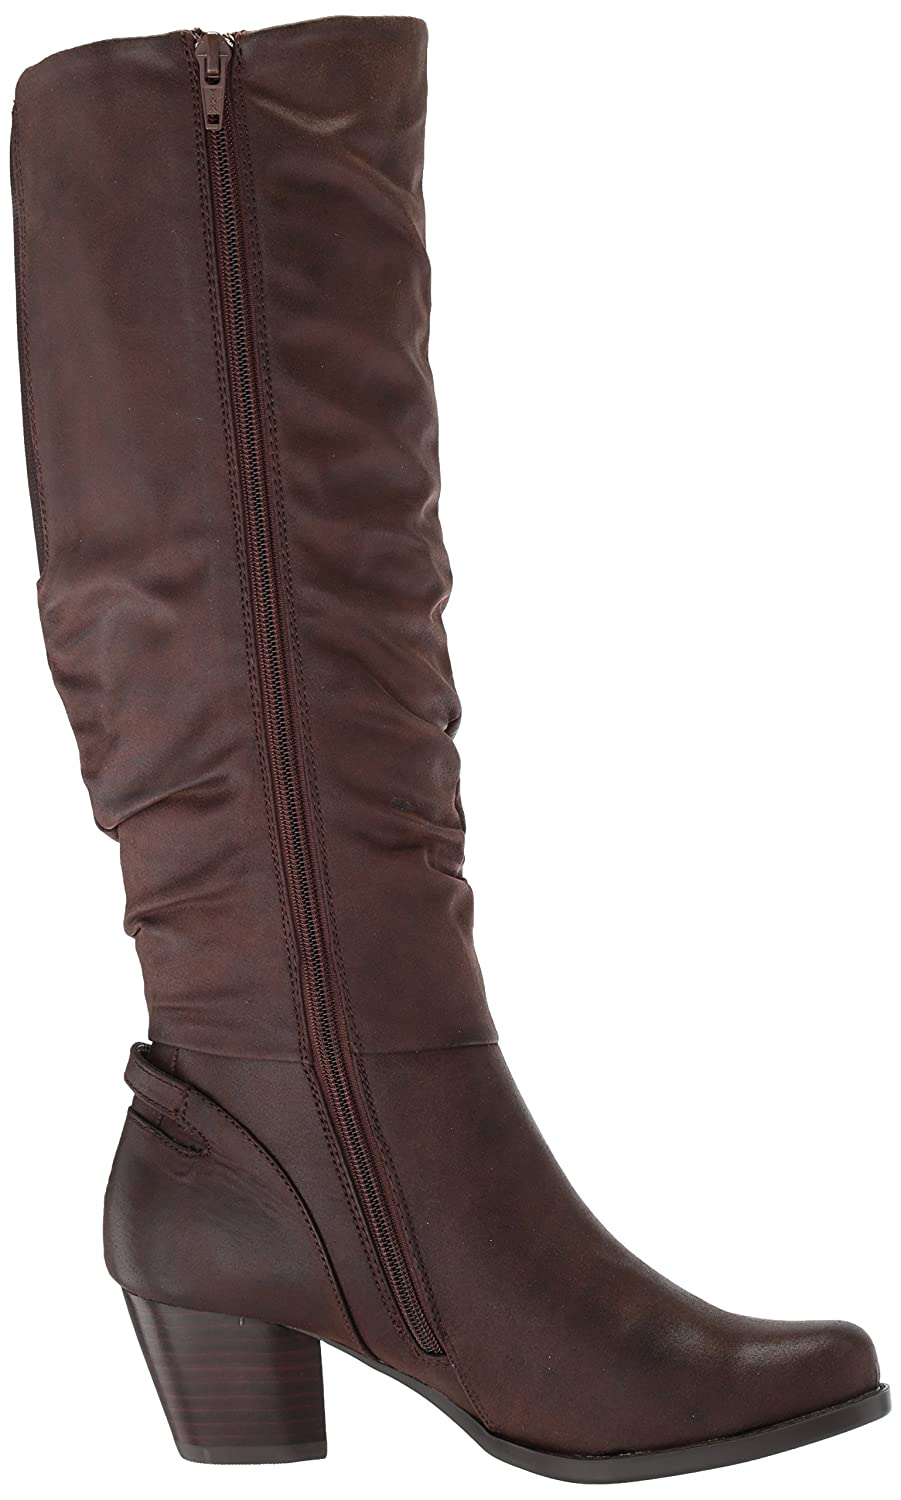 BareTraps Women's B071L123MM Bt Respect Riding Boot B071L123MM Women's 8.5 B(M) US|Dark Brown b1a22a